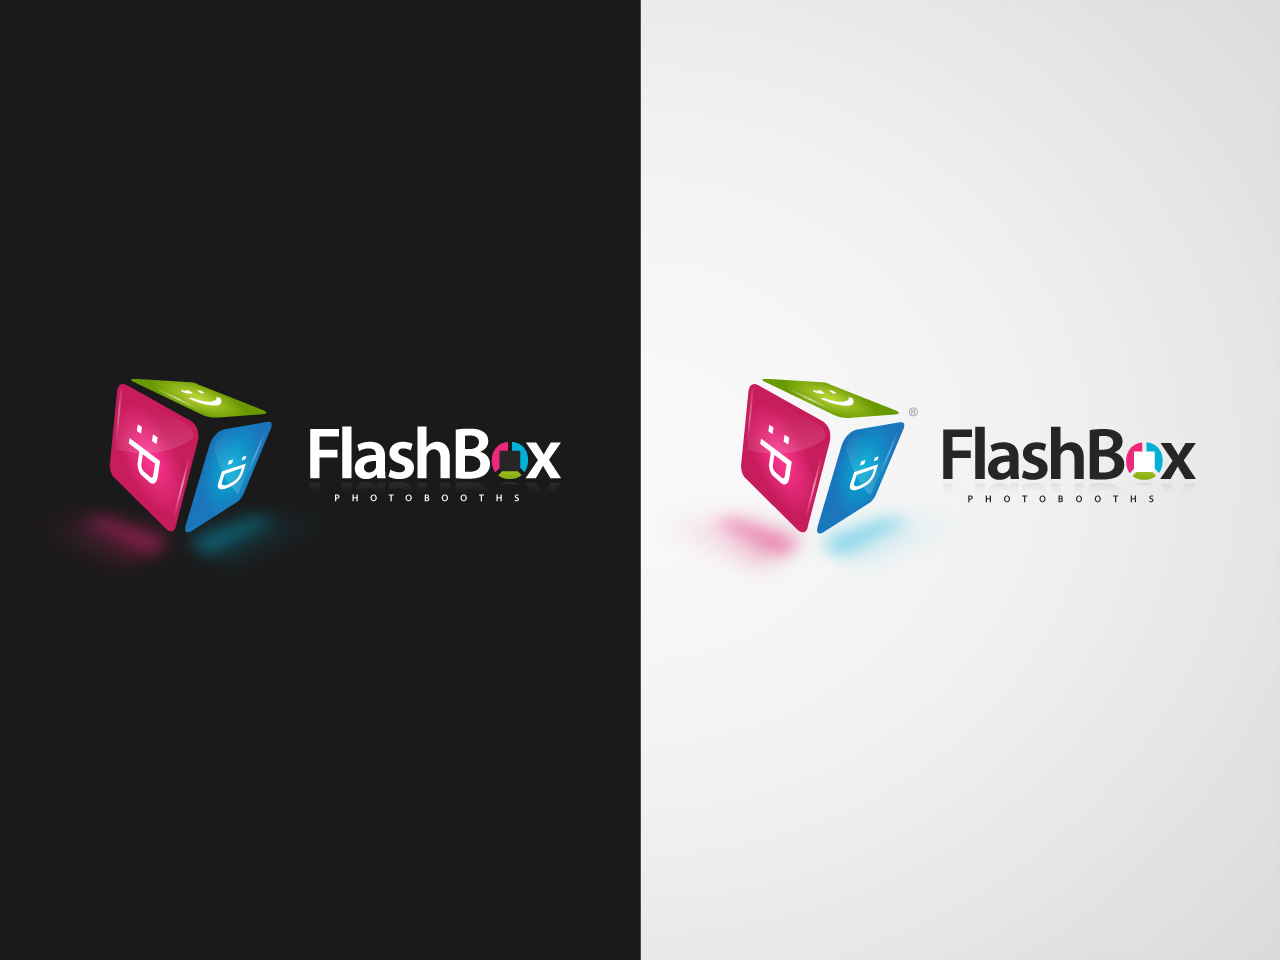 Logo Design by jpbituin - Entry No. 169 in the Logo Design Contest New Logo Design for FlashBox Photobooths.